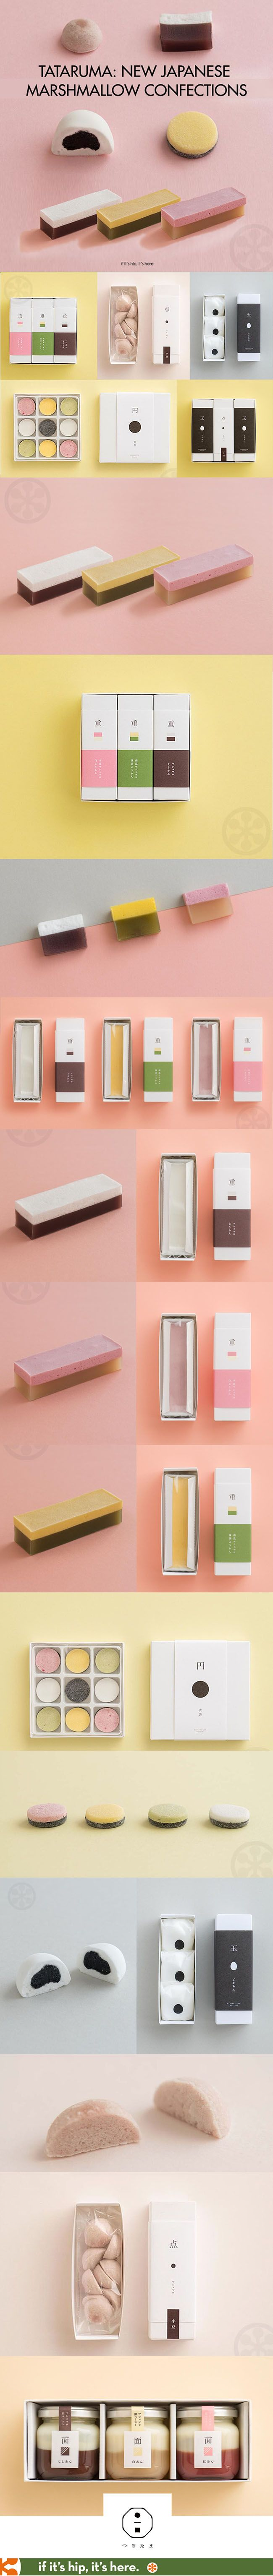 These new Japanese marshmallow confections are as beautifully packaged as they are unusual. #packagedesign #japanese #confections #design